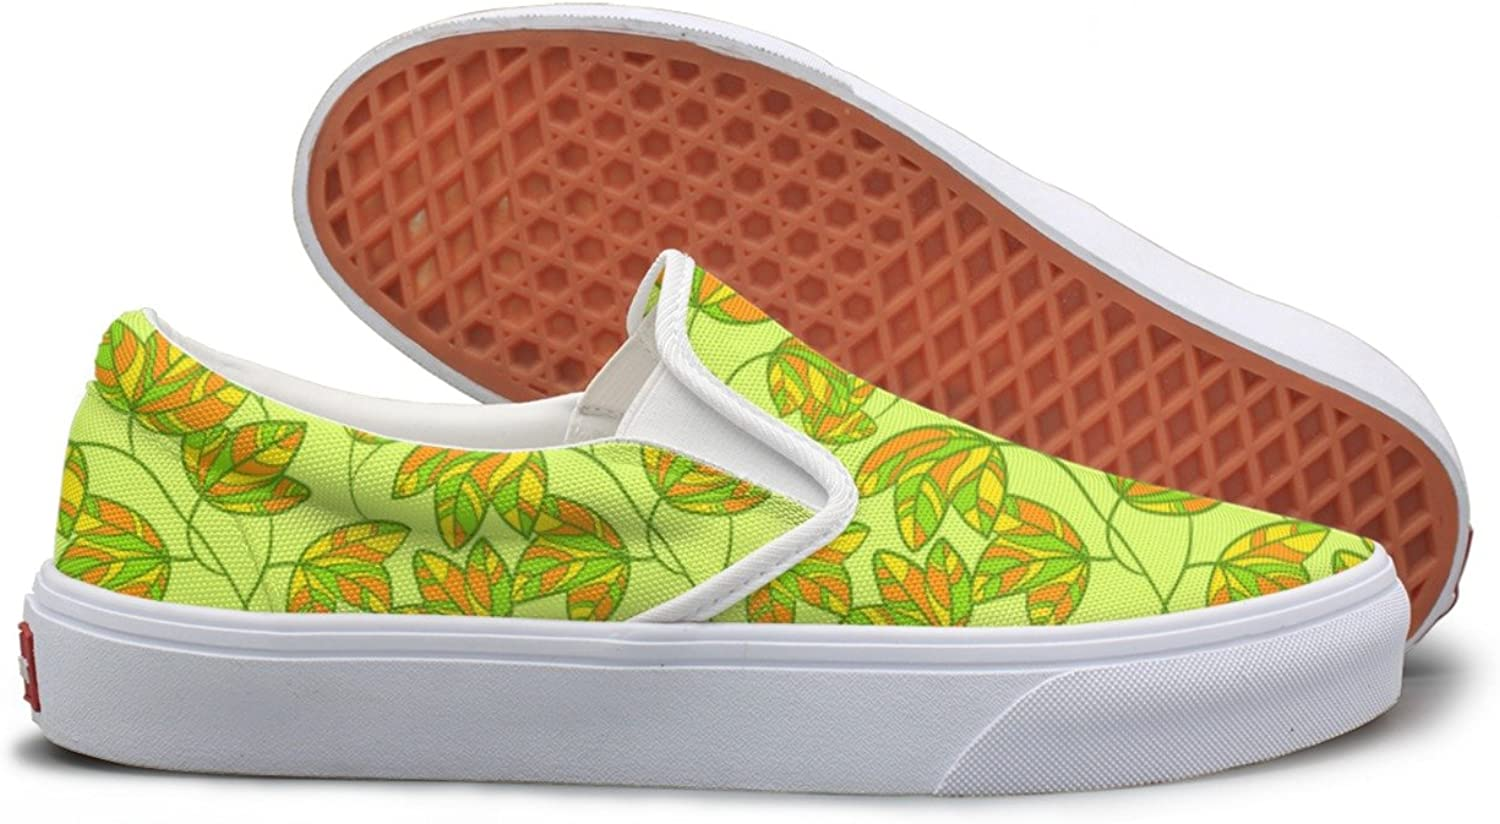 SEERTED Green Plant Climber Small Comfortable Sneakers for Women Wide Width